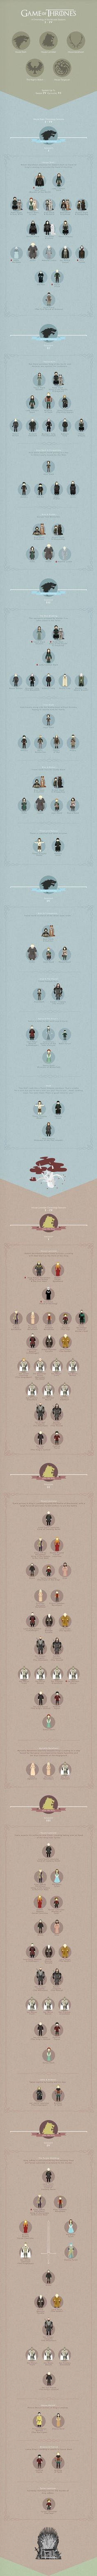 The most helpful Game of Thrones infographic of all time.